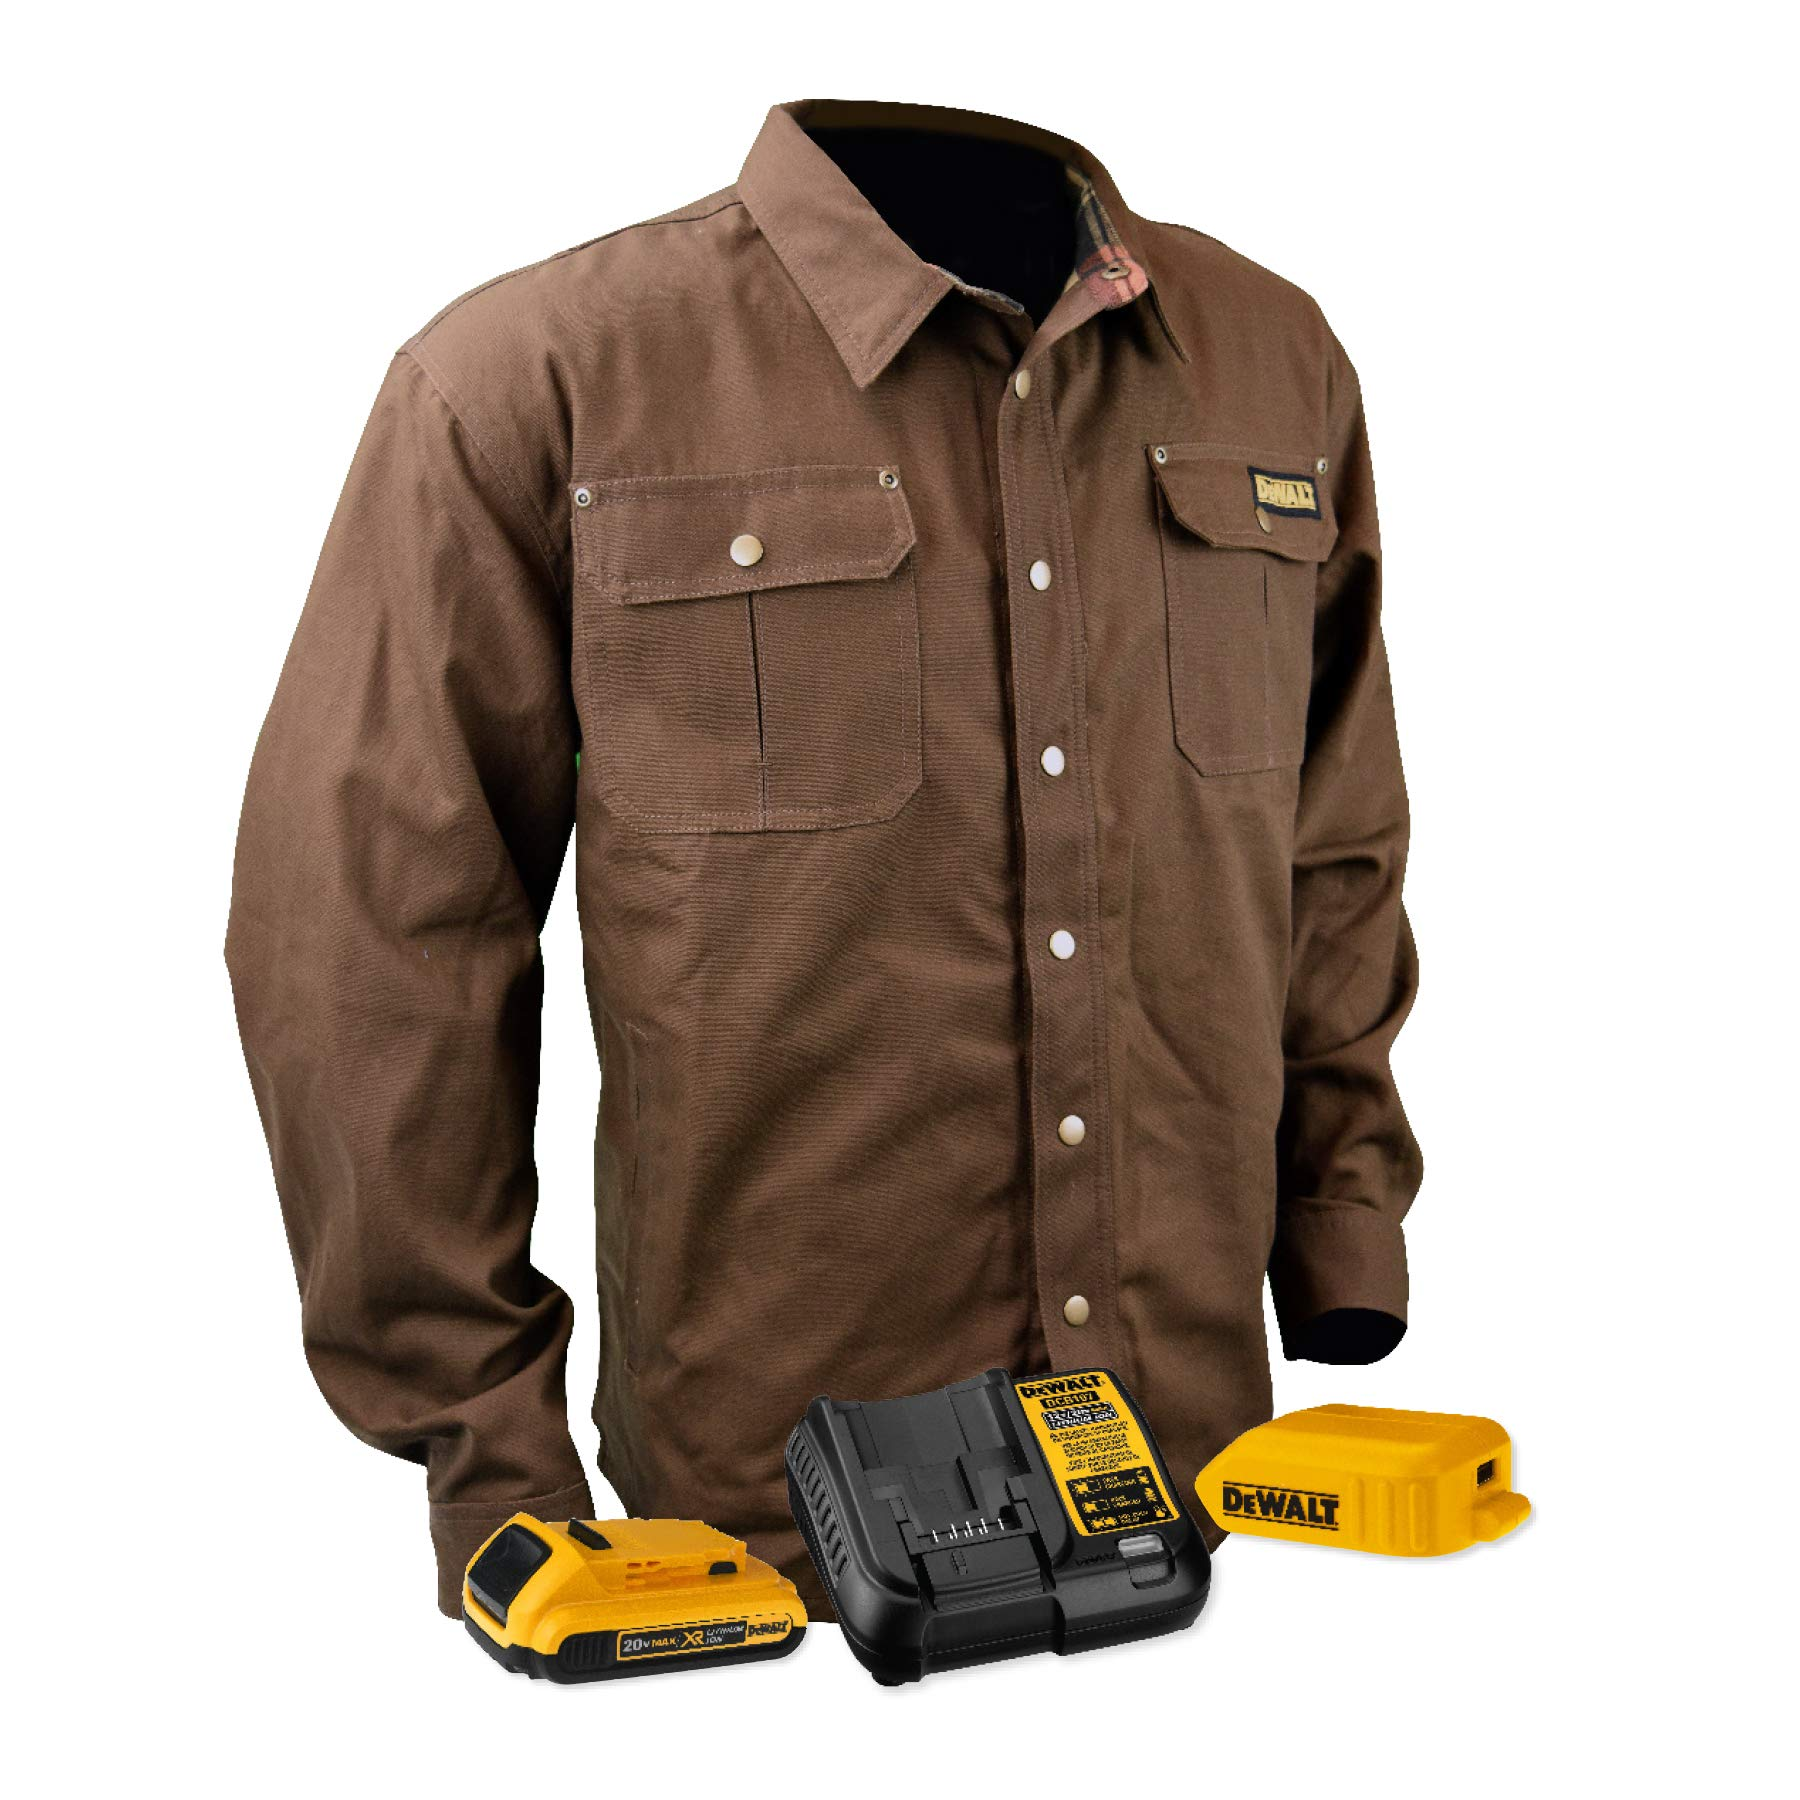 DEWALT DCHJ081TD1-M Heated Heavy Duty Shirt Jacket, M, Tobacco